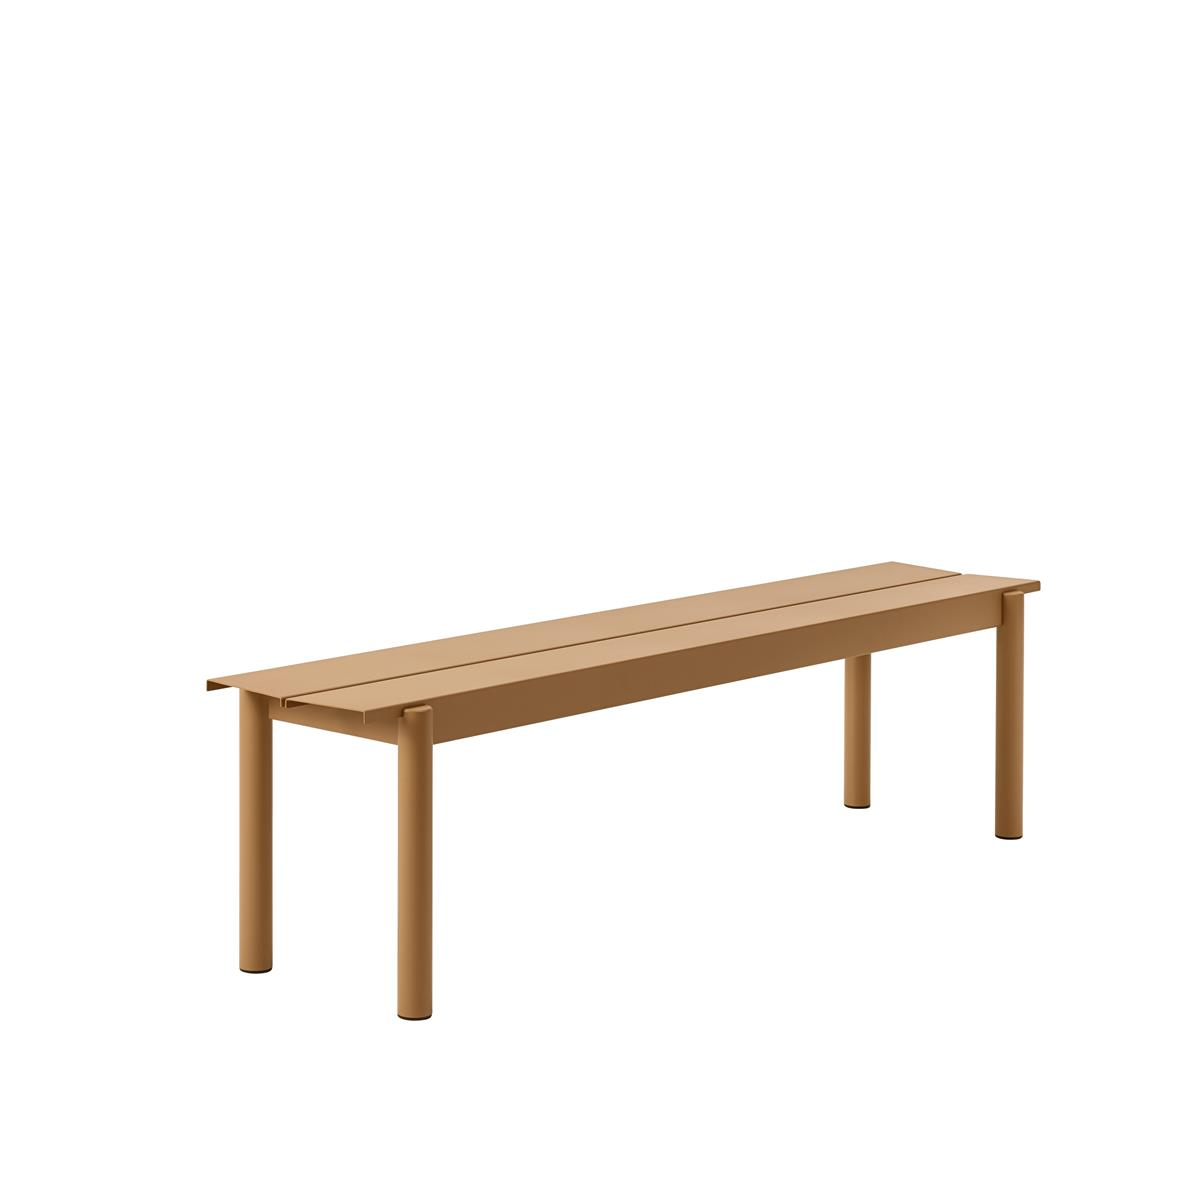 Linear Steel Bench 170 x H45,5 - Burnt Orange